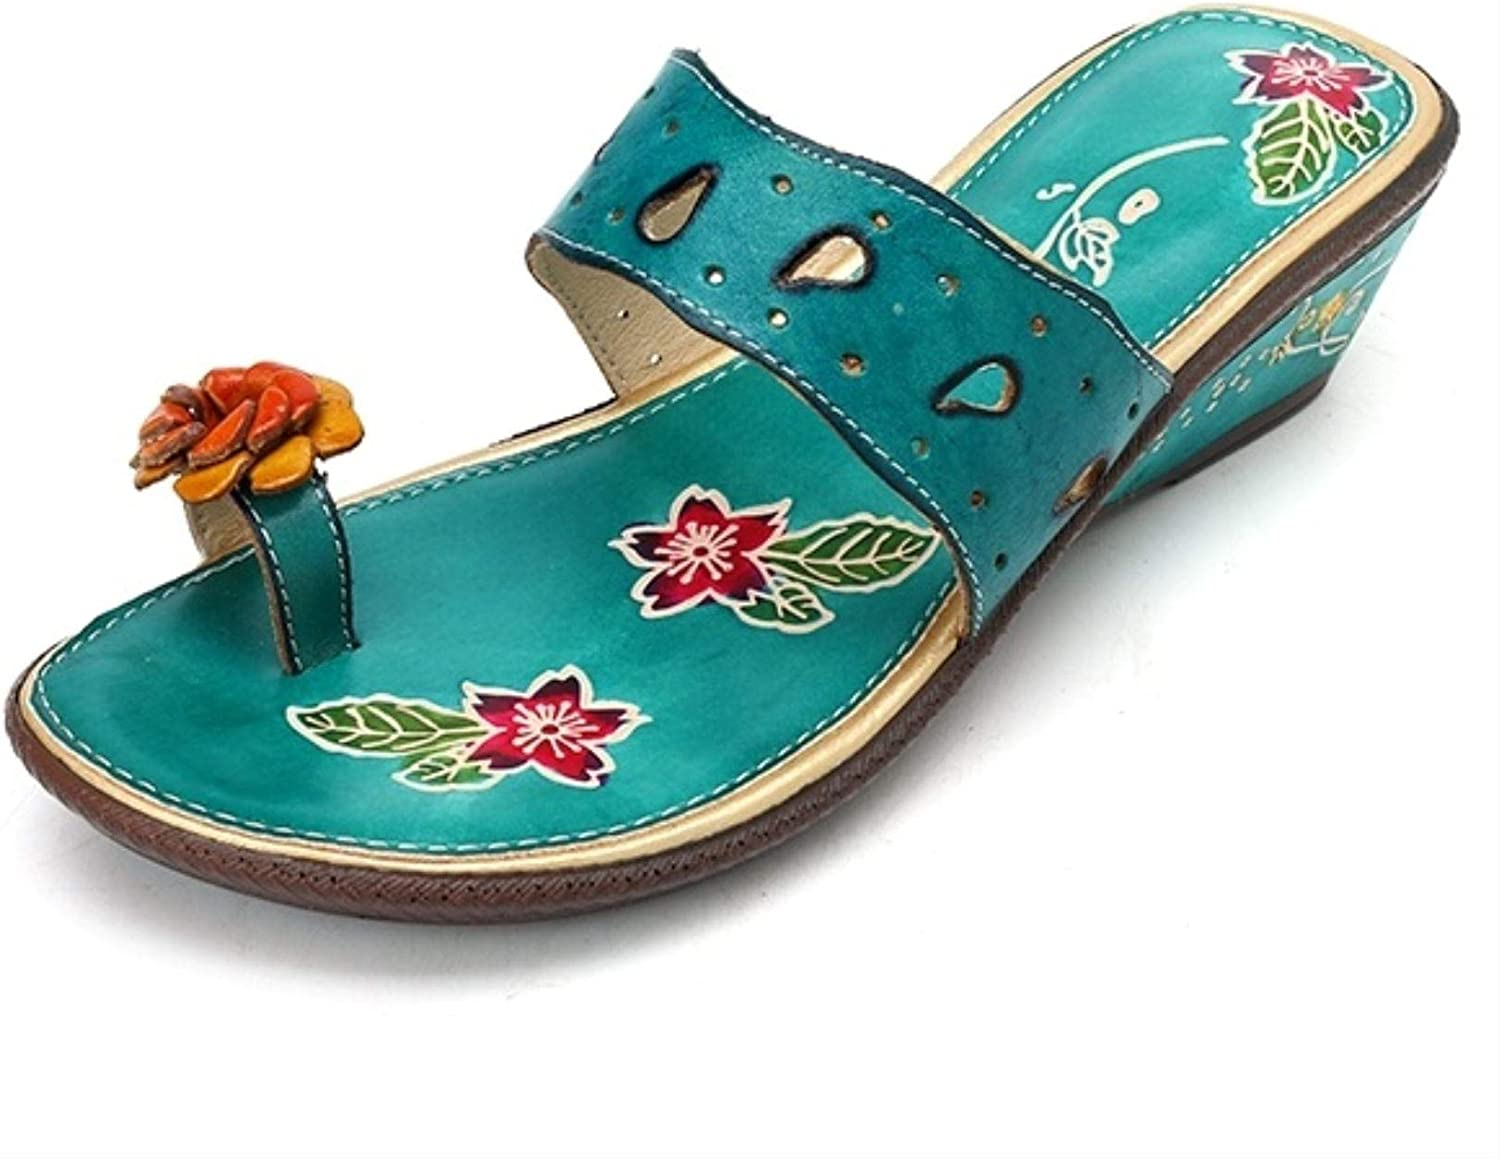 Jc-factory Retro Women Genuine Leather Ring Toe Slippers Wedge Handmade Floral shoes